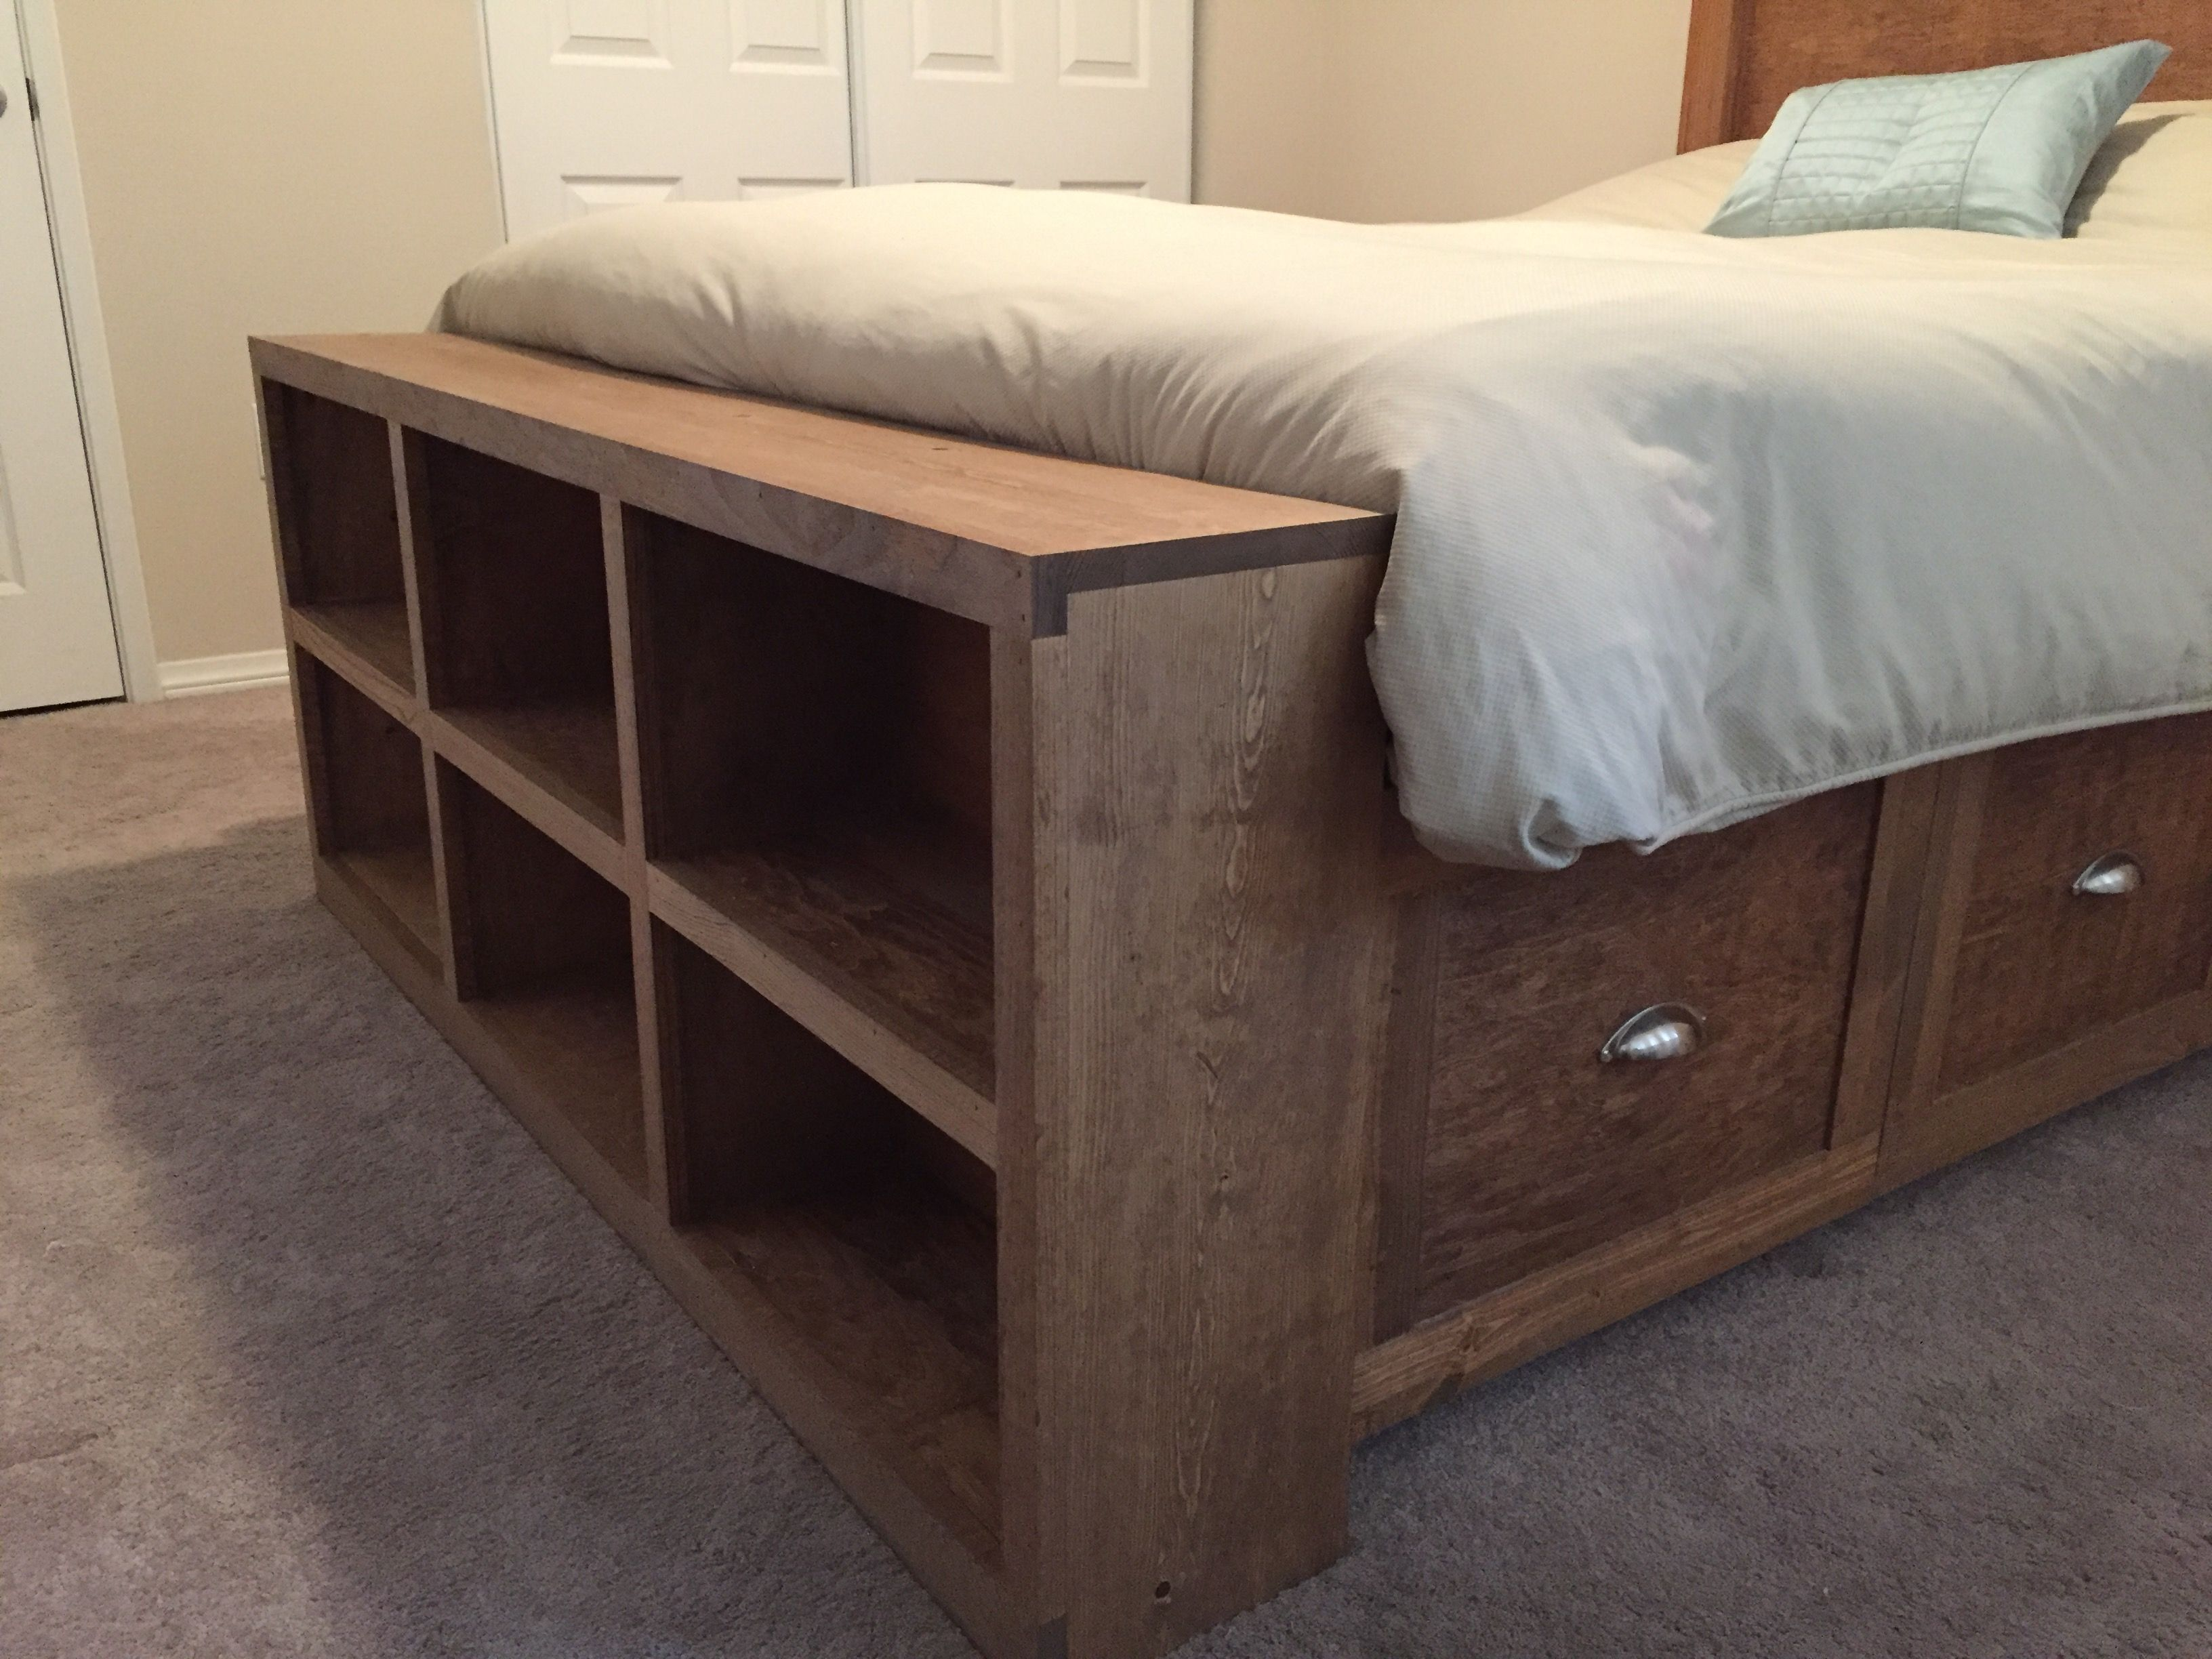 footboard storage Bed frame with storage, Bookshelves